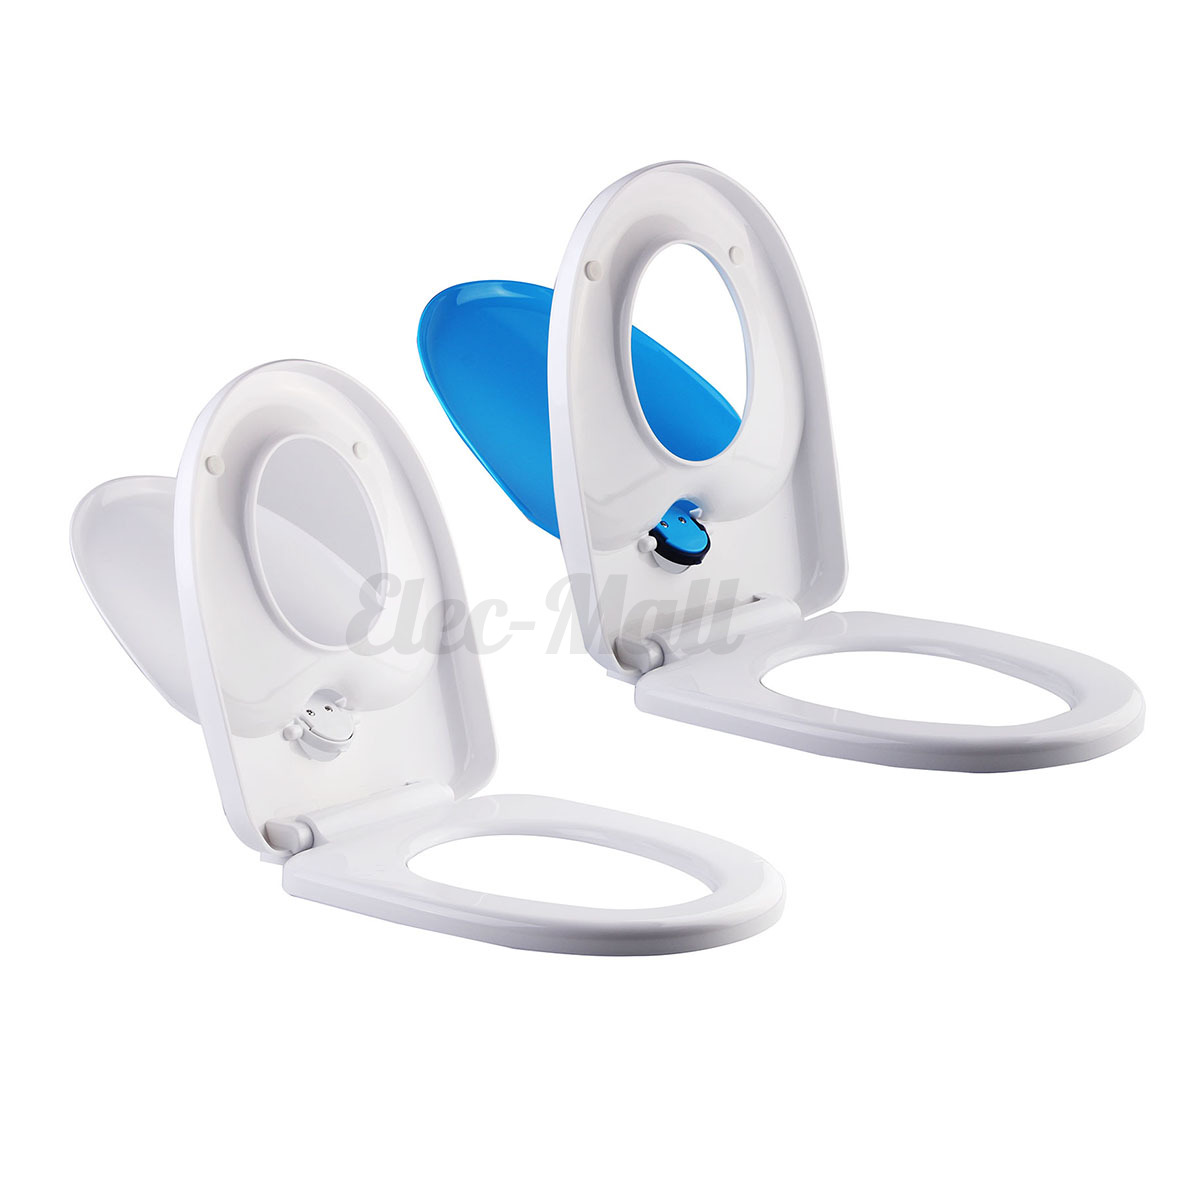 2 In 1 Kids Child Adult Family Potty Training Toilet Seat